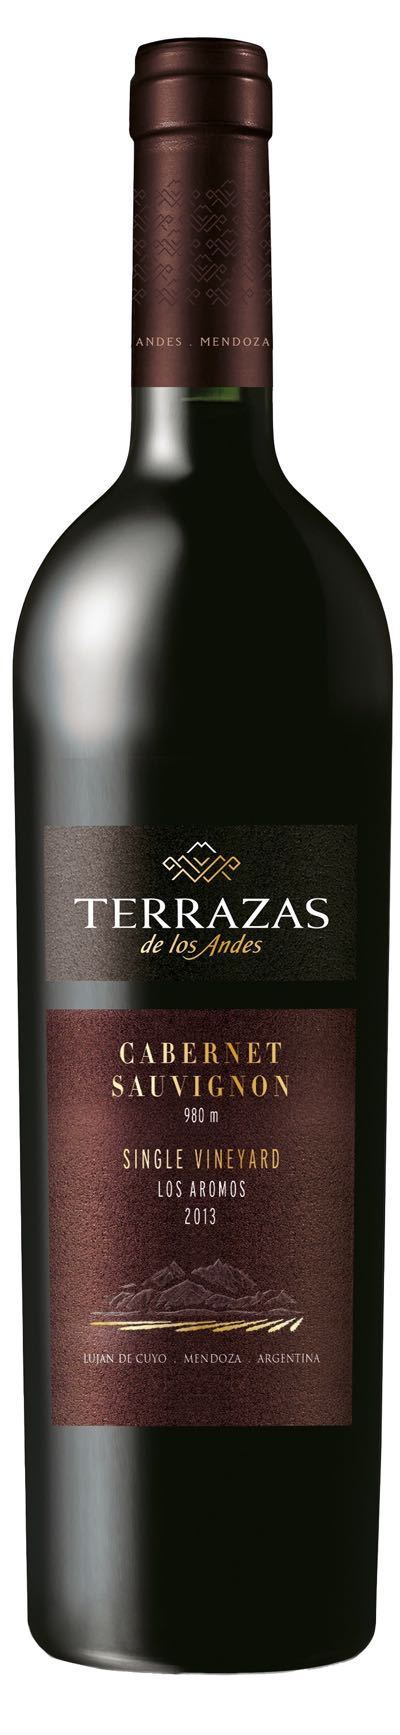 Terrazas Single Vineyard Cabernet Sauvignon 2013